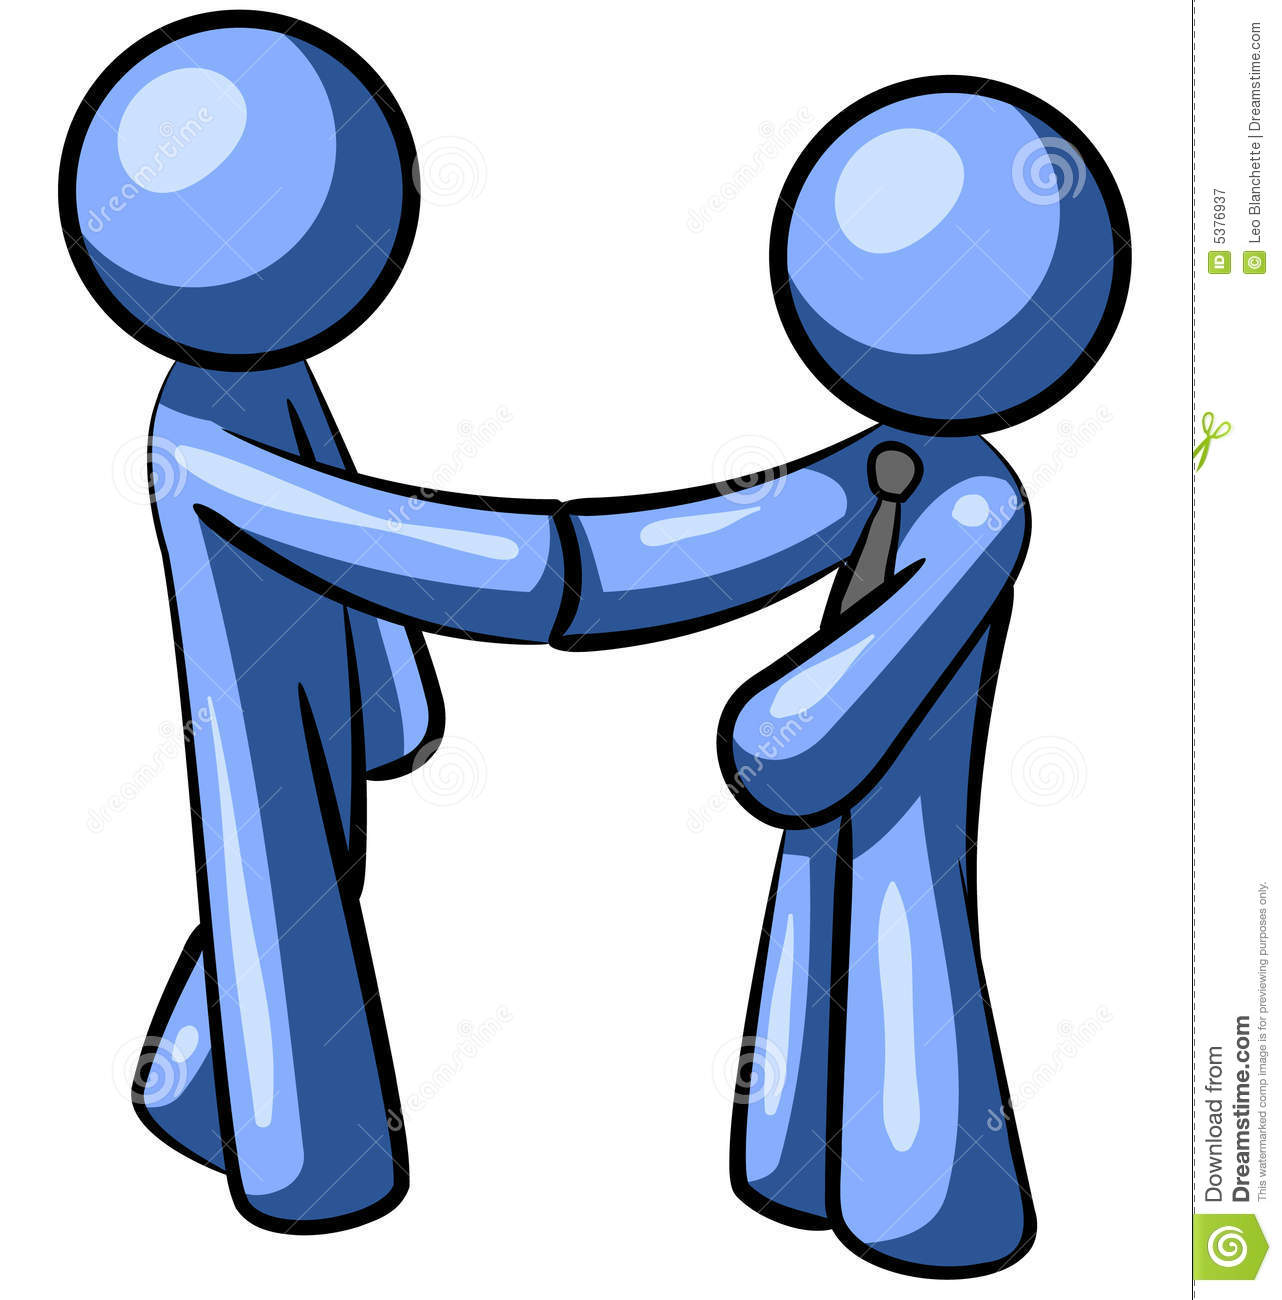 Blue Men Handshake Royalty Free Stock Photography - Image: 5376937